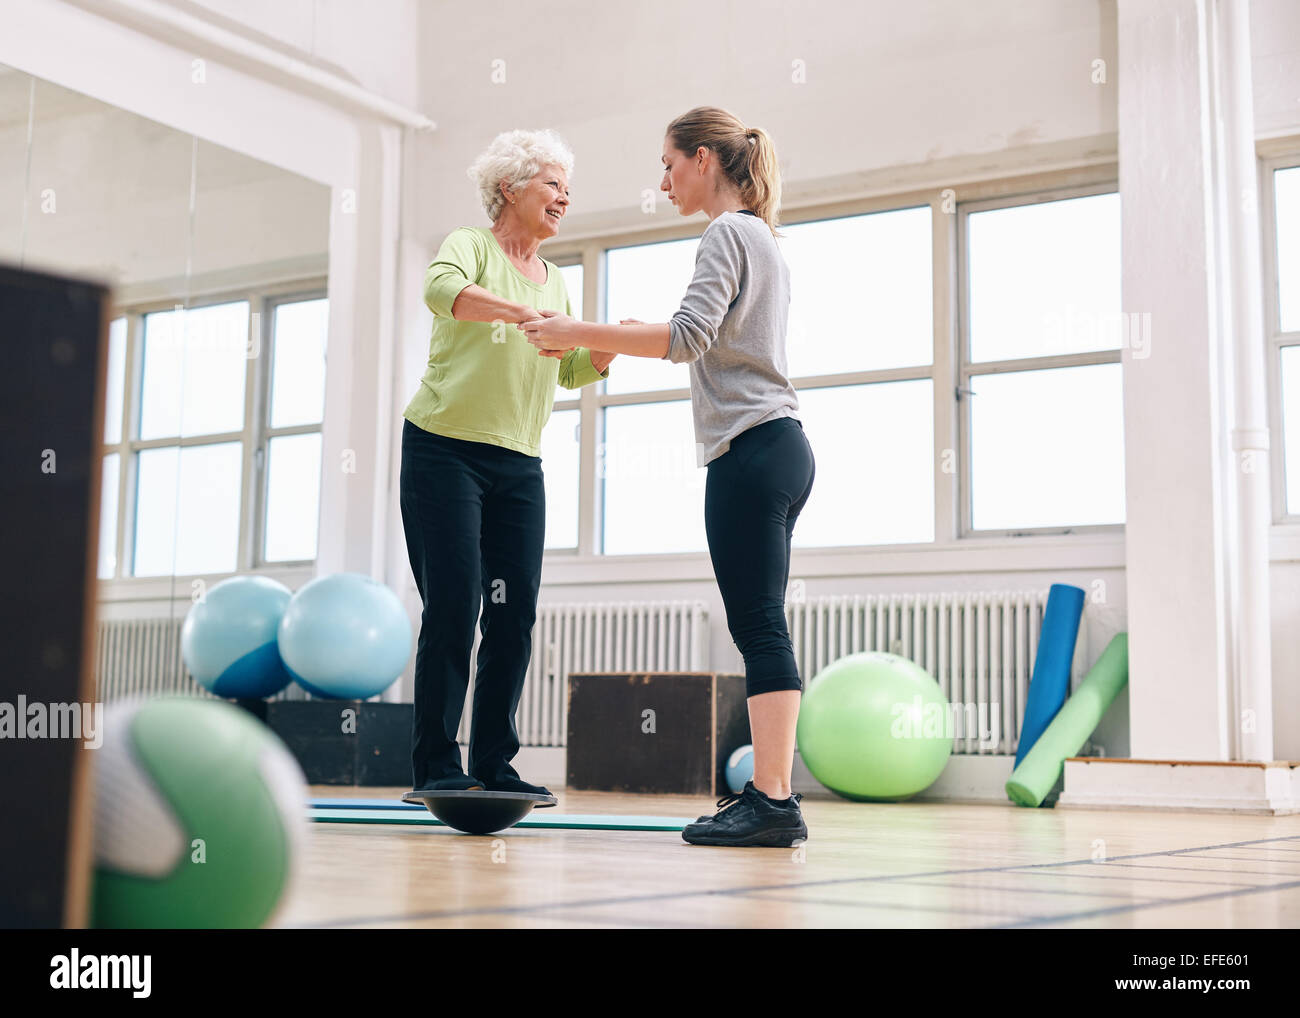 Female trainer helping senior woman in a gym exercising with a bosu balance training platform. Elder woman being - Stock Image